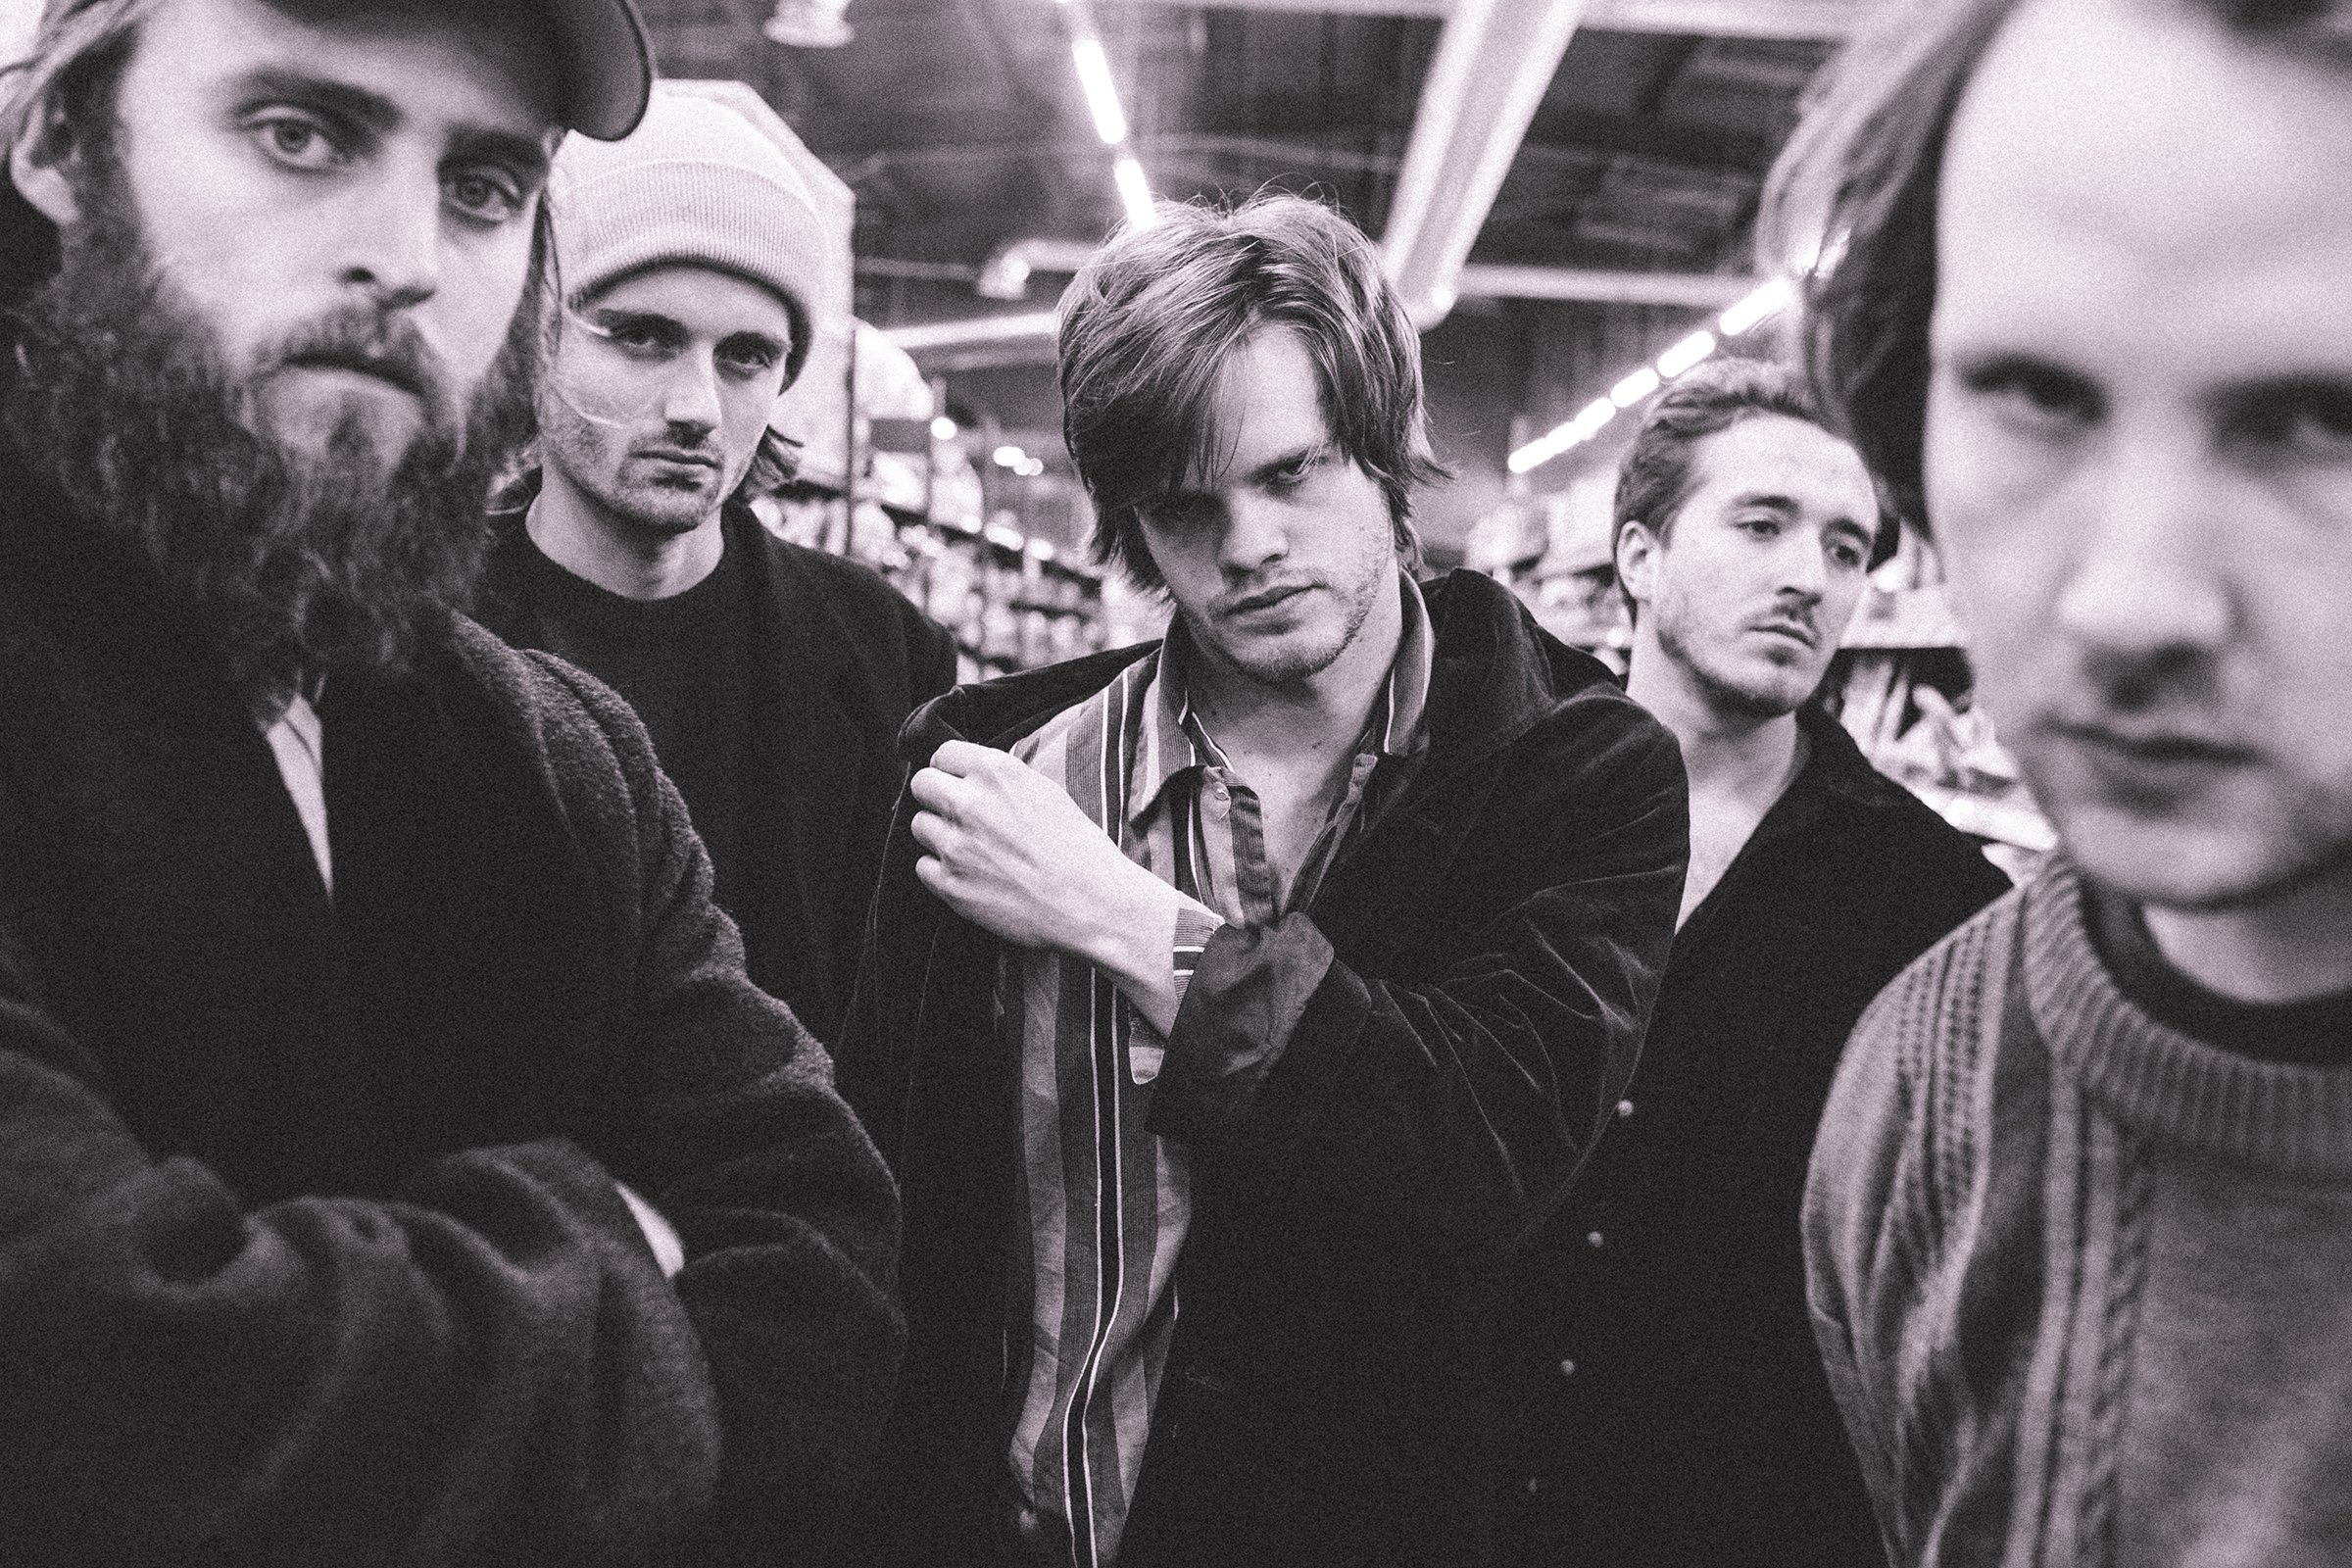 Sheffield's SHEAFS announce debut EP 'Vox Pop' - Hear new single 'Total Vanity'